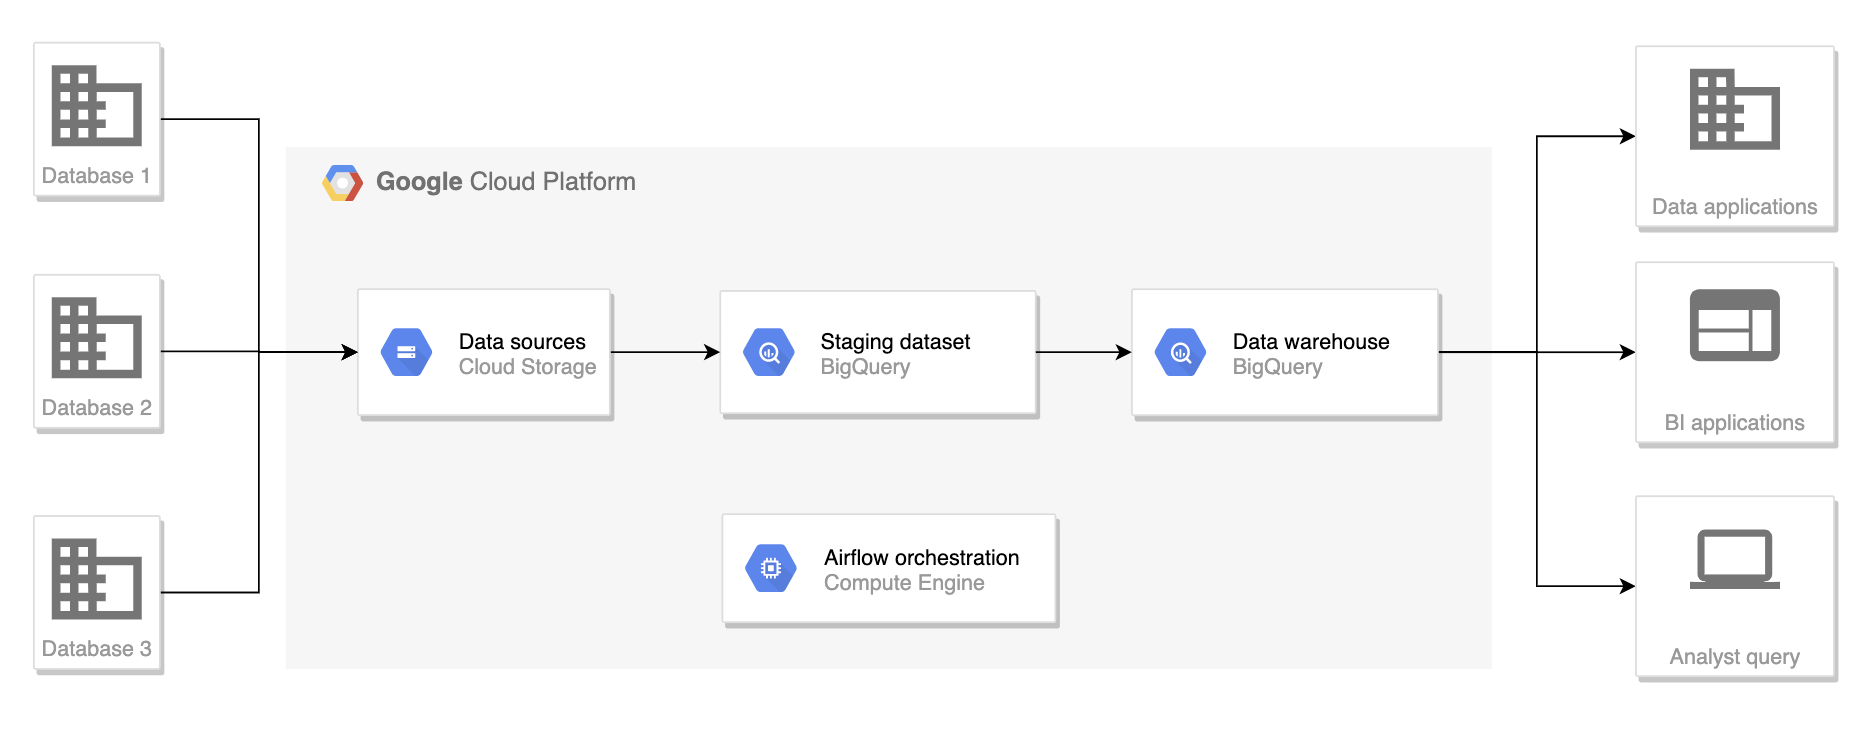 Build your first data warehouse with Airflow on GCP